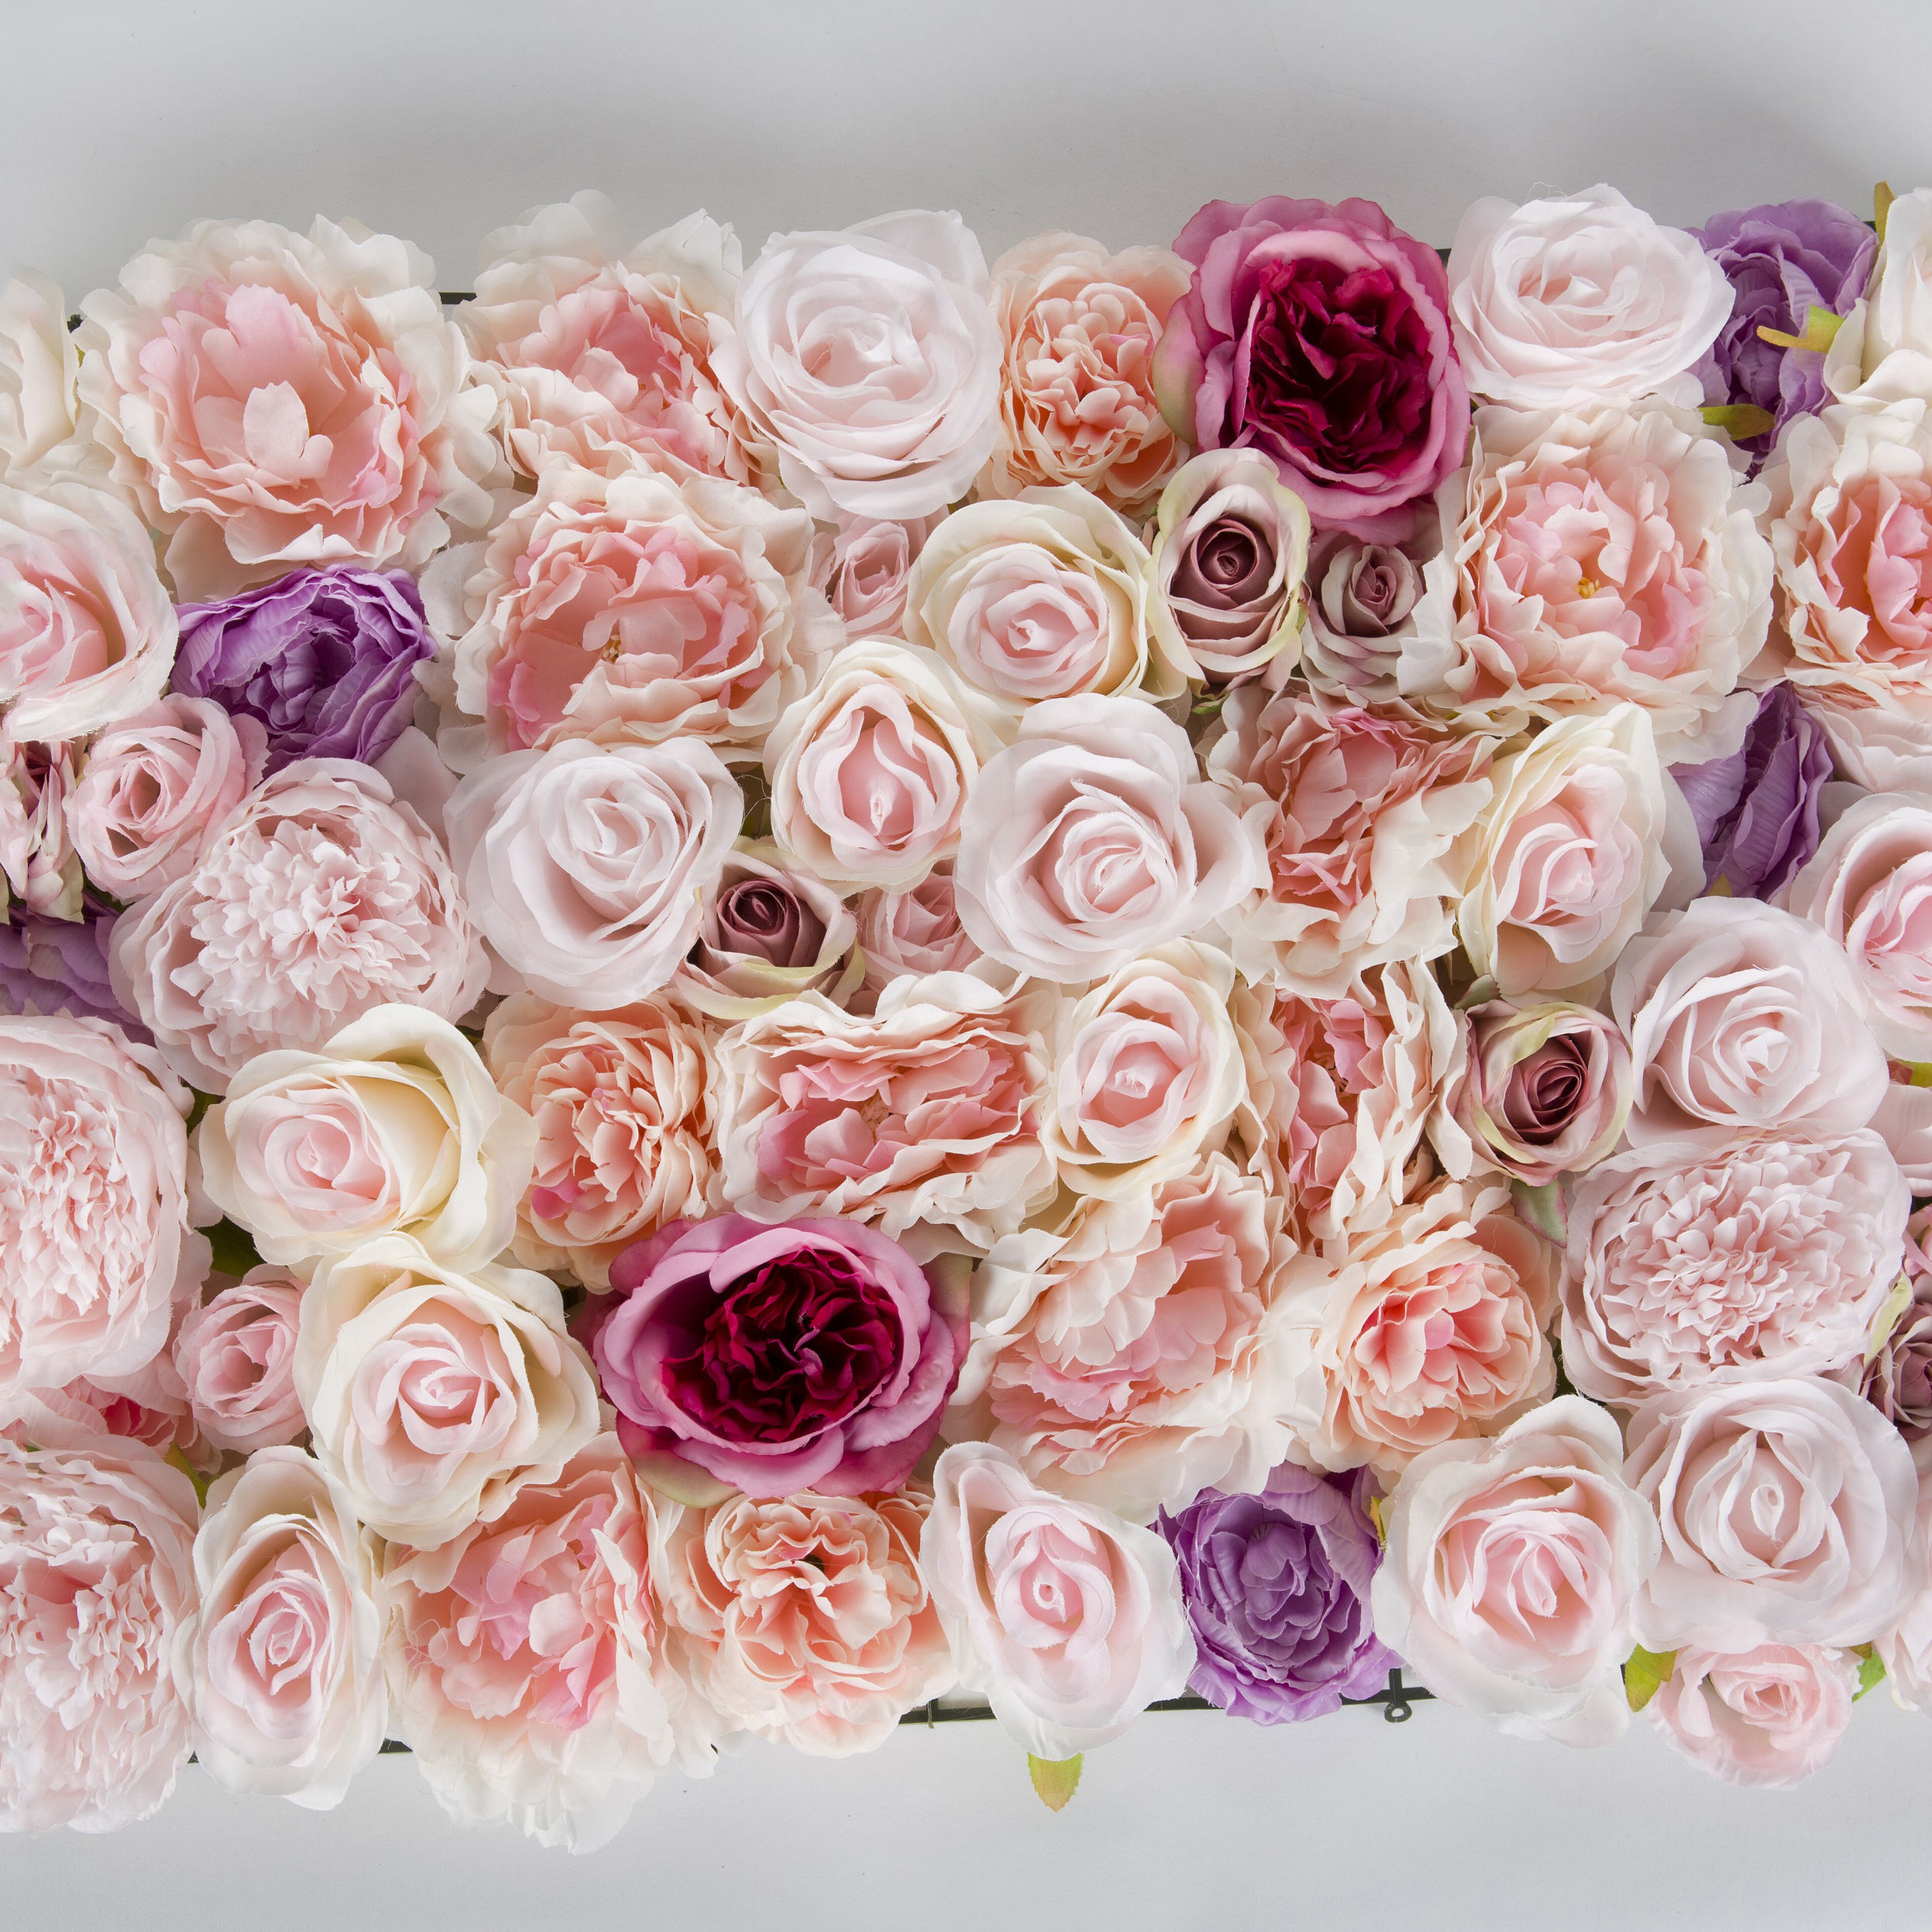 A Low Price Home Wedding Decoration Rose Flower Wall